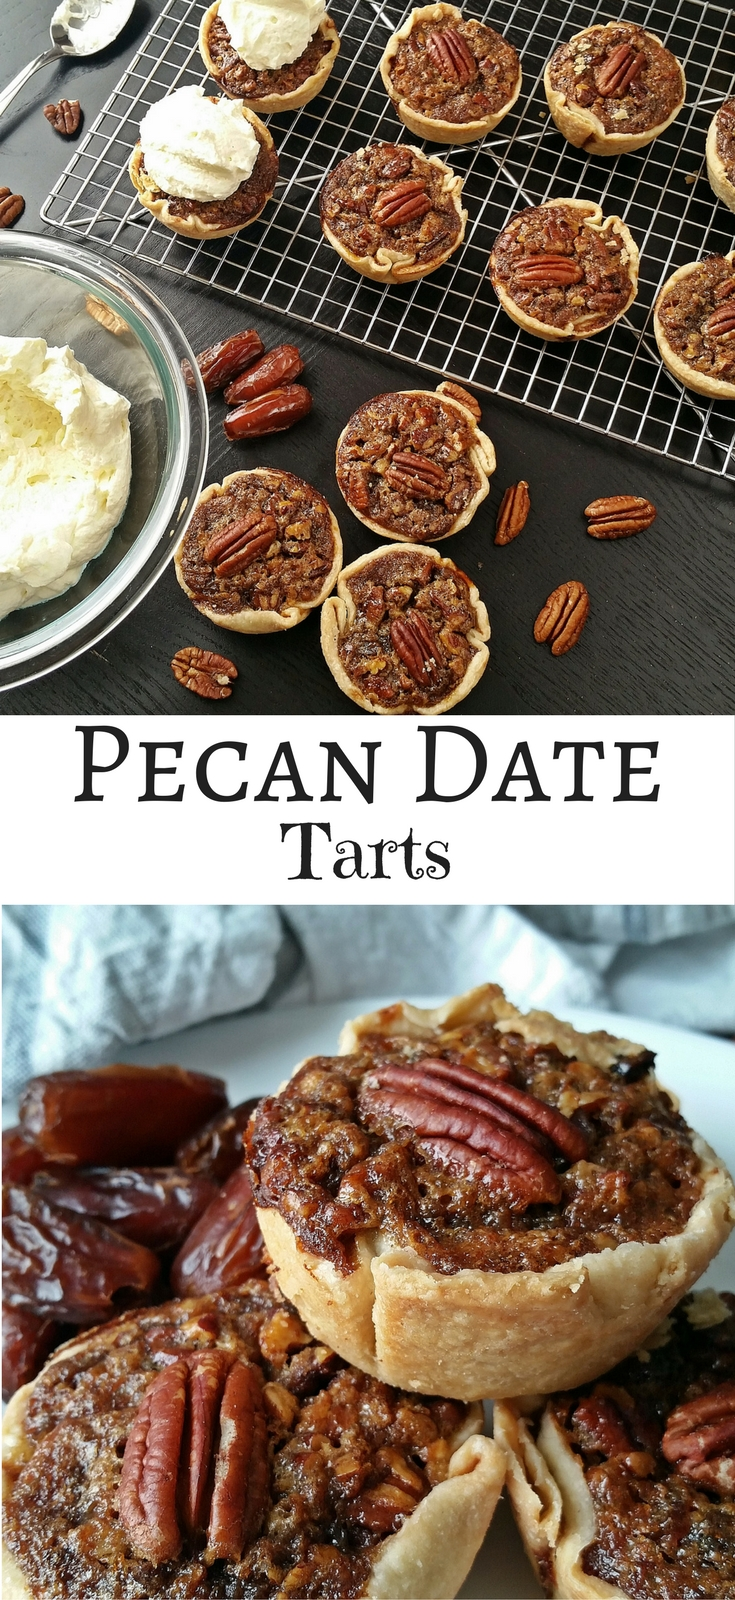 Pecan Date Tarts - Recipe by Cooks and Kid